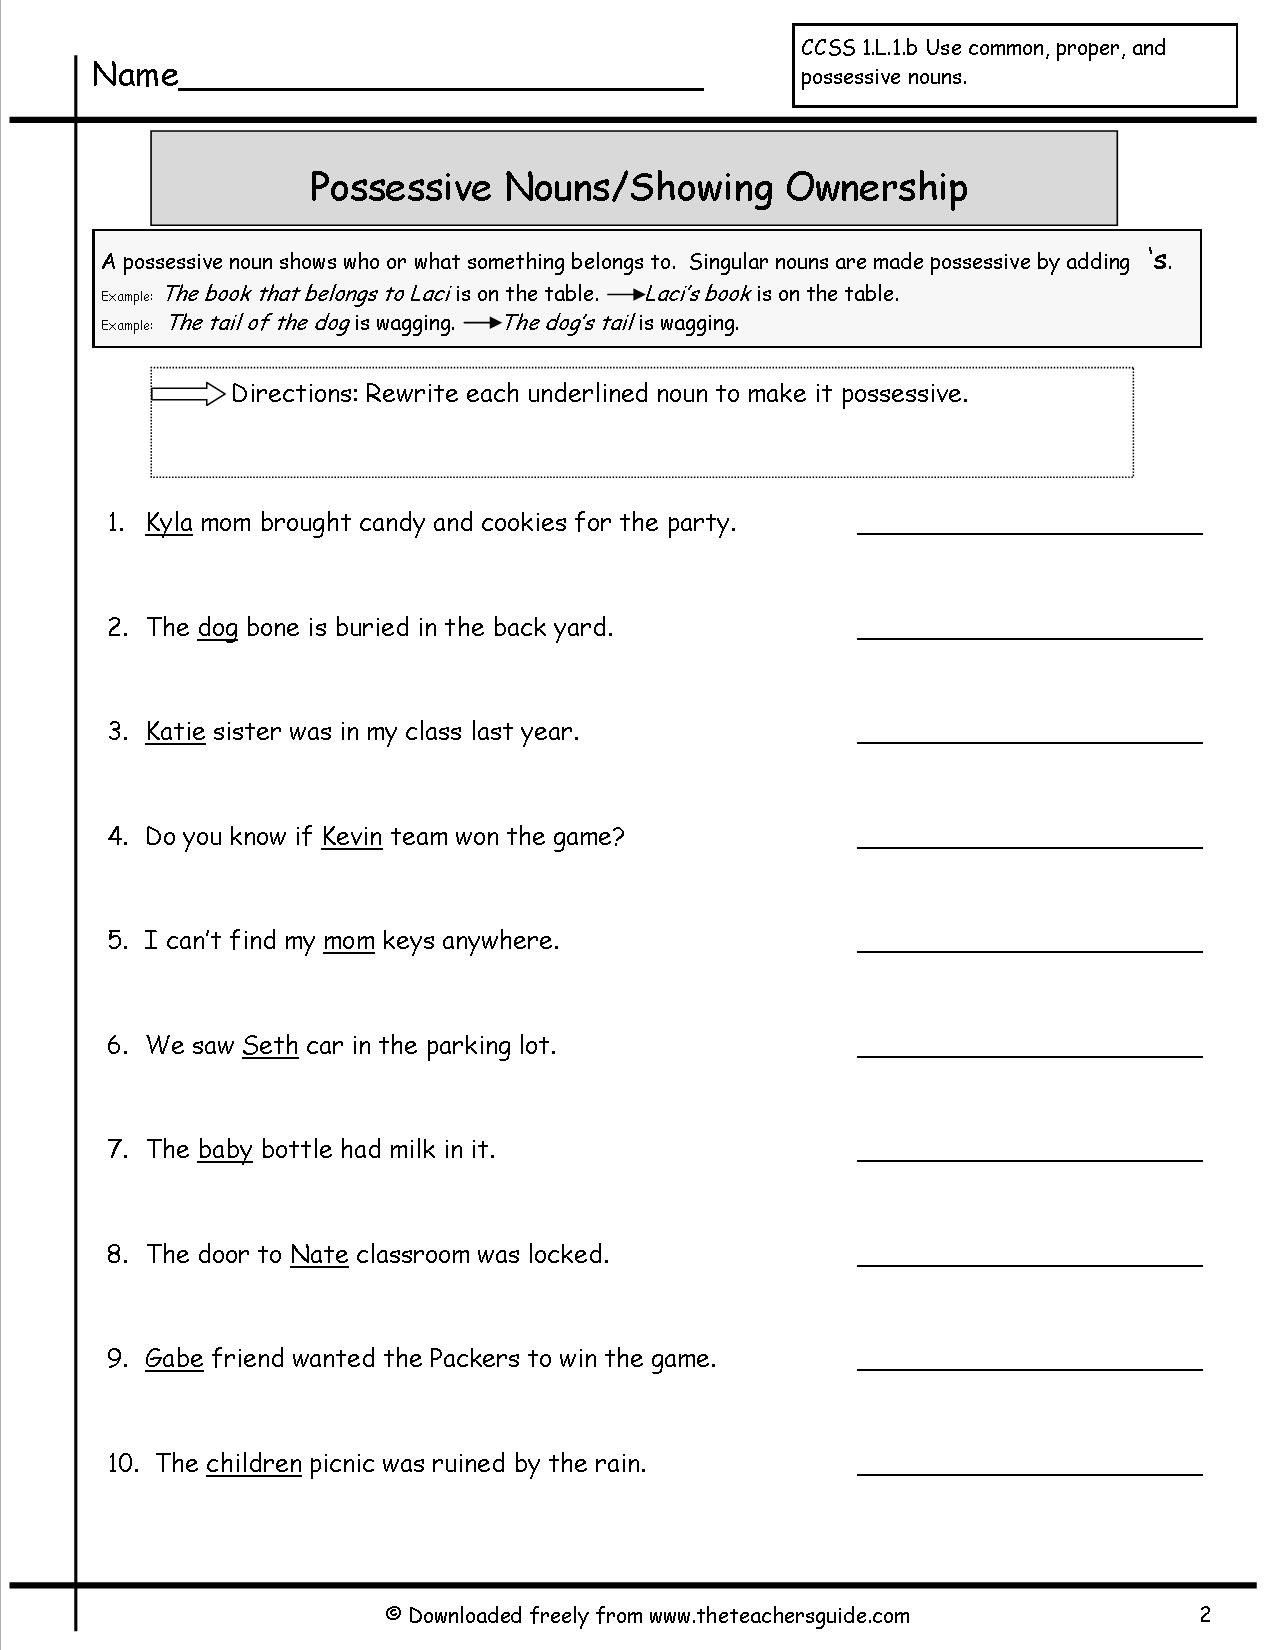 Possessive Nouns Worksheets 3rd Grade Possessive Pronouns